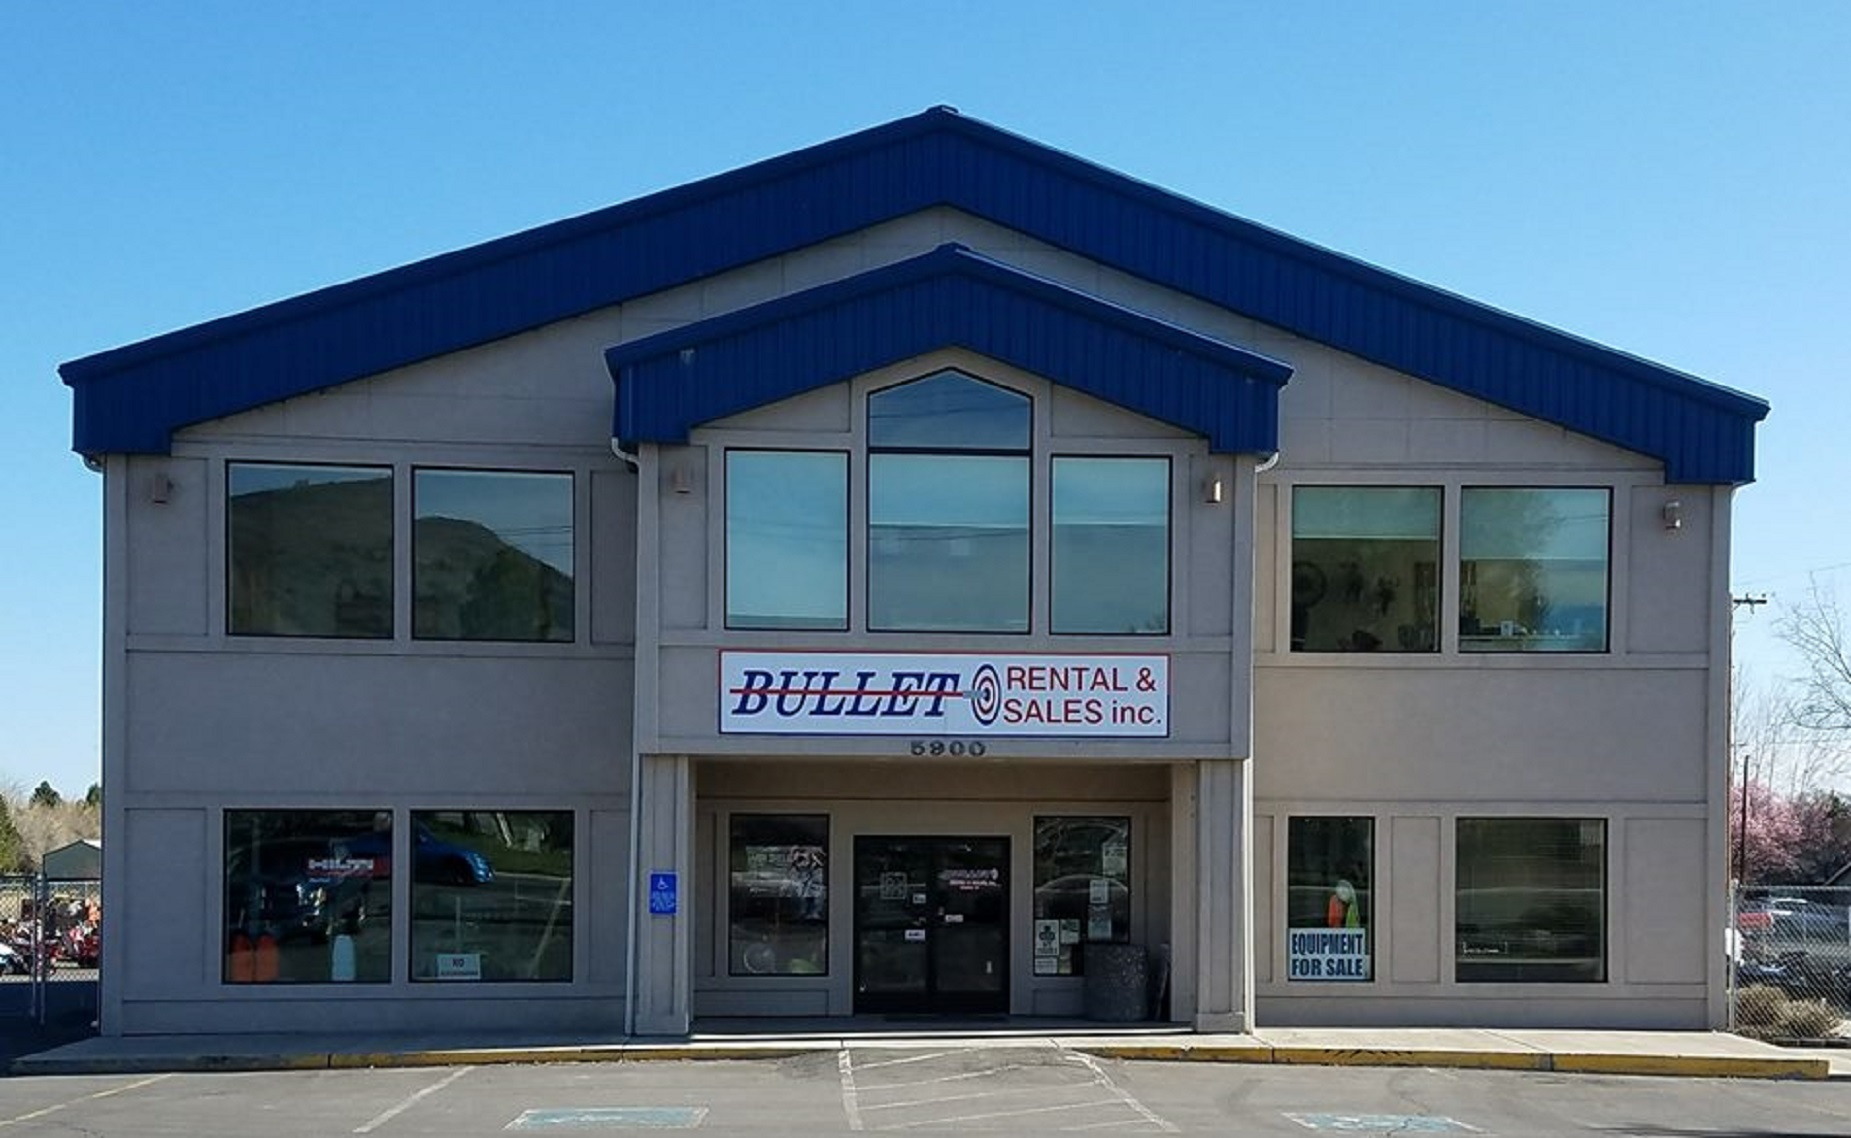 Bullet Rental & Sales, Inc.